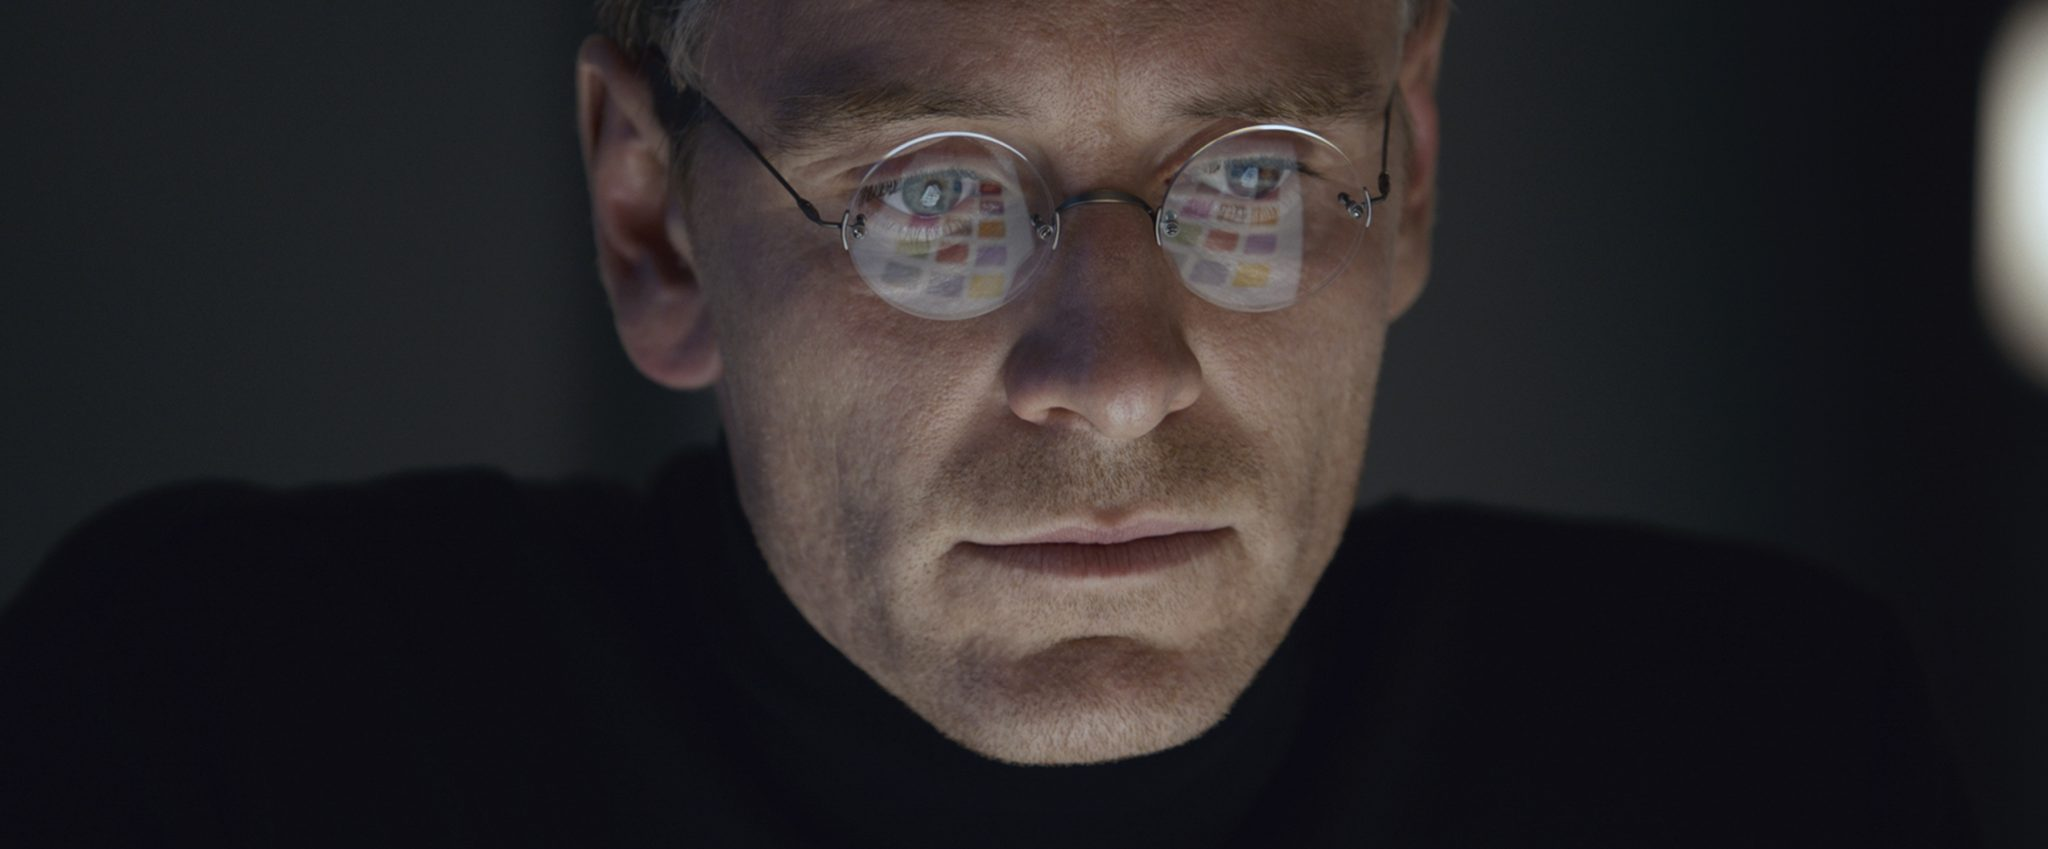 steve-jobs-movie-michael-fassbender